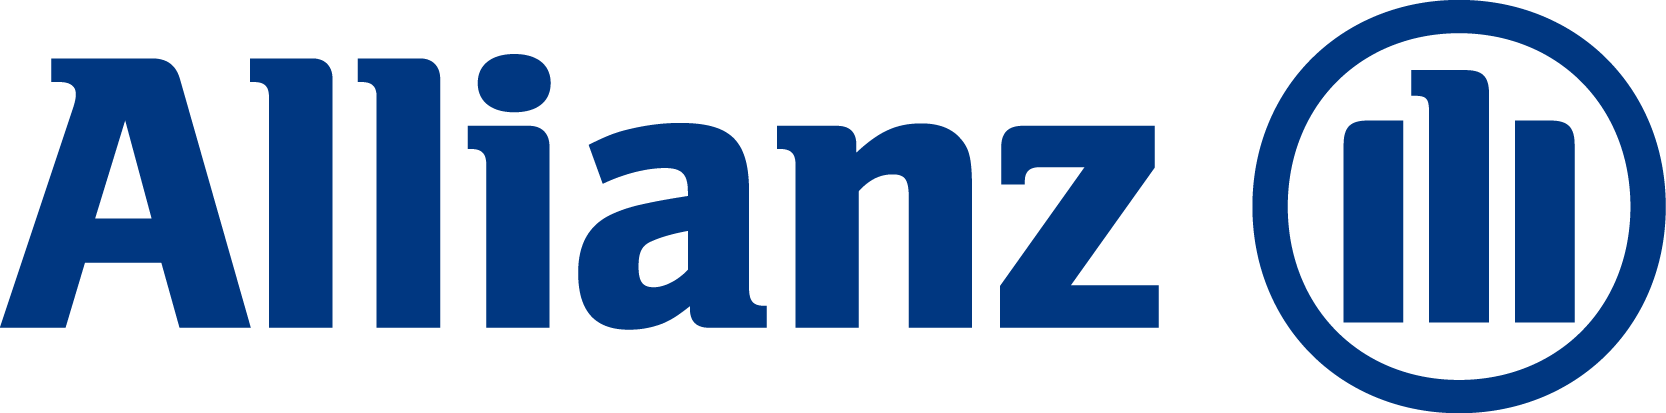 Allianz Insurance logo image